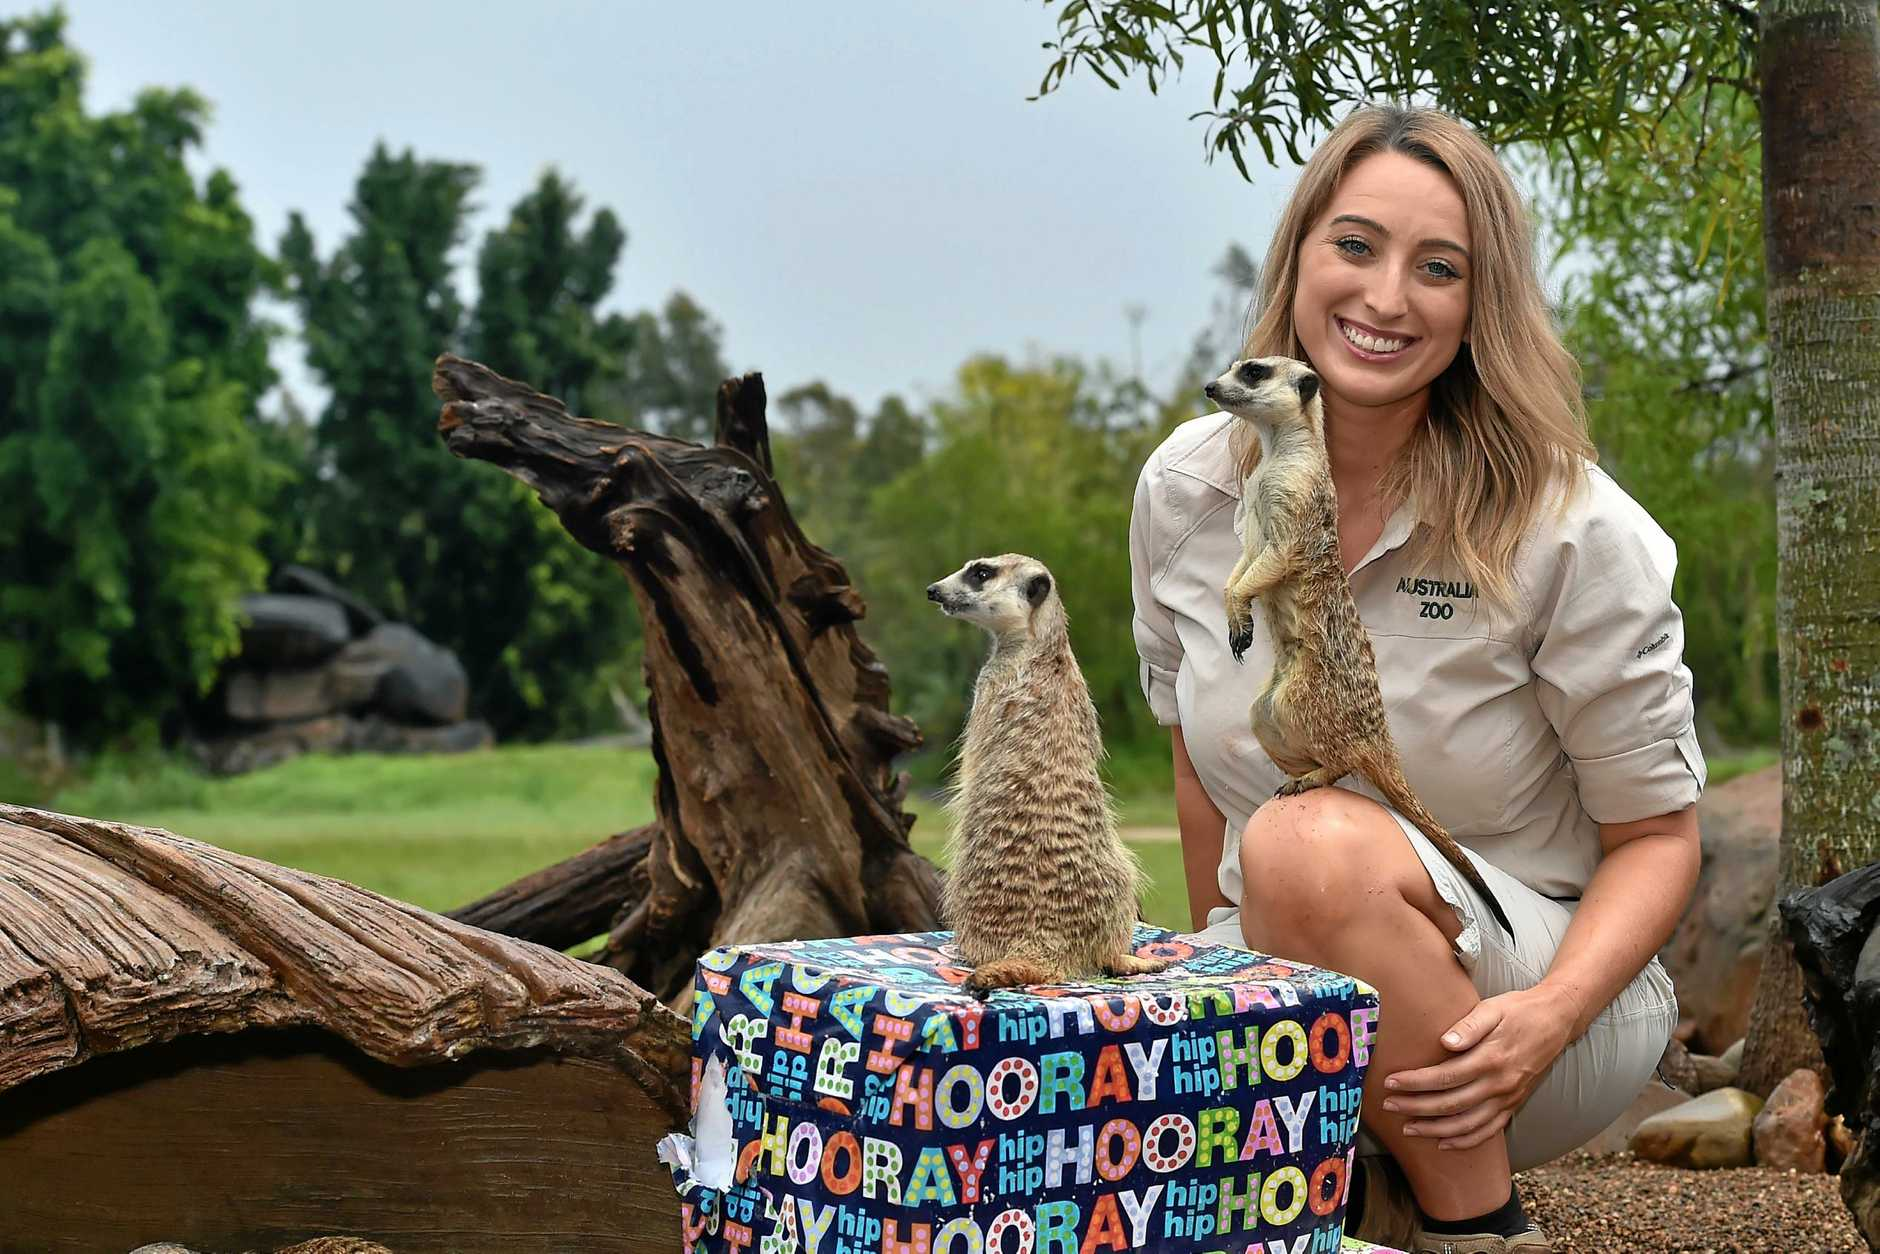 Australia Zoo keeper Katherine Cove helping meerkats Fee and Fi celebrate their second birthday at the zoo's Africa section.